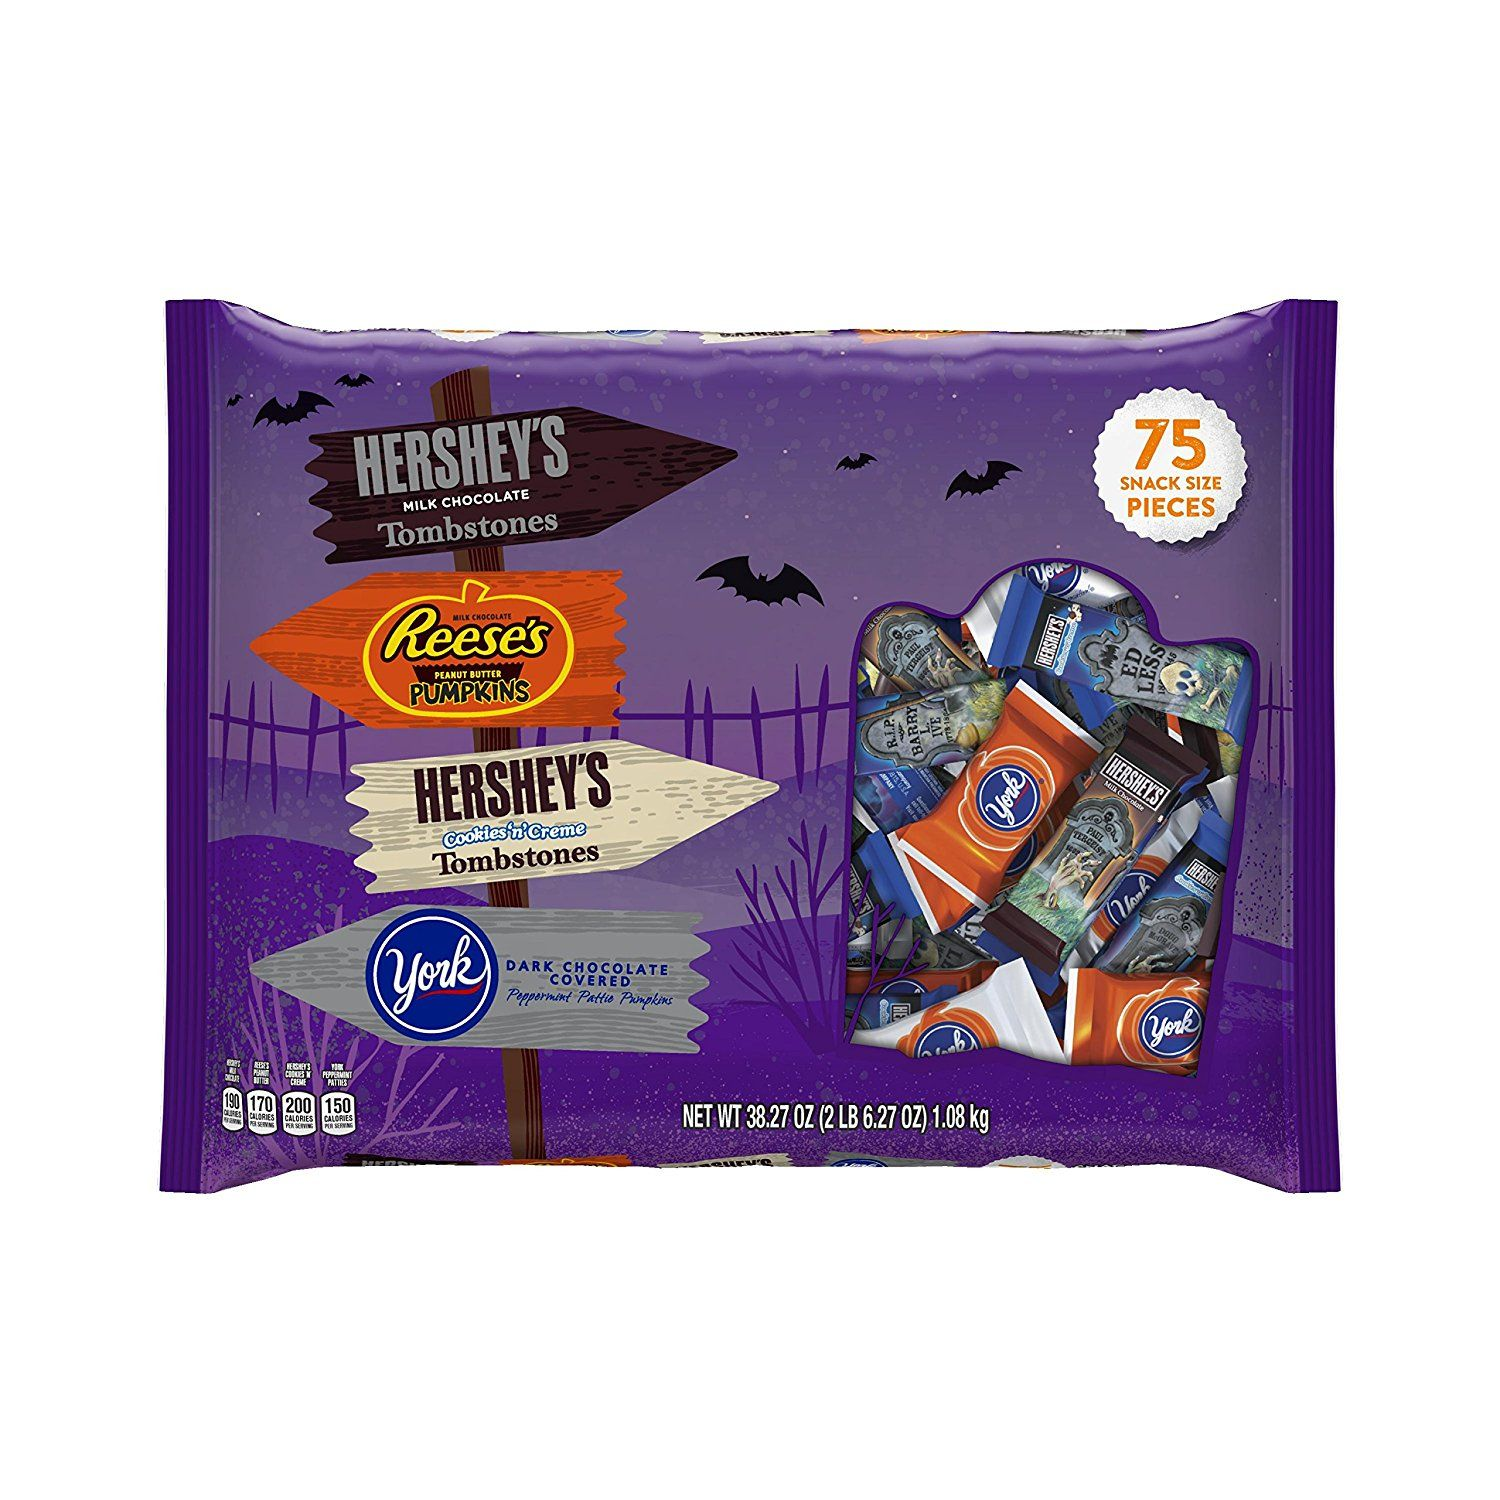 HERSHEY'S Halloween Snack Size Assortment (38.27Ounce Bag